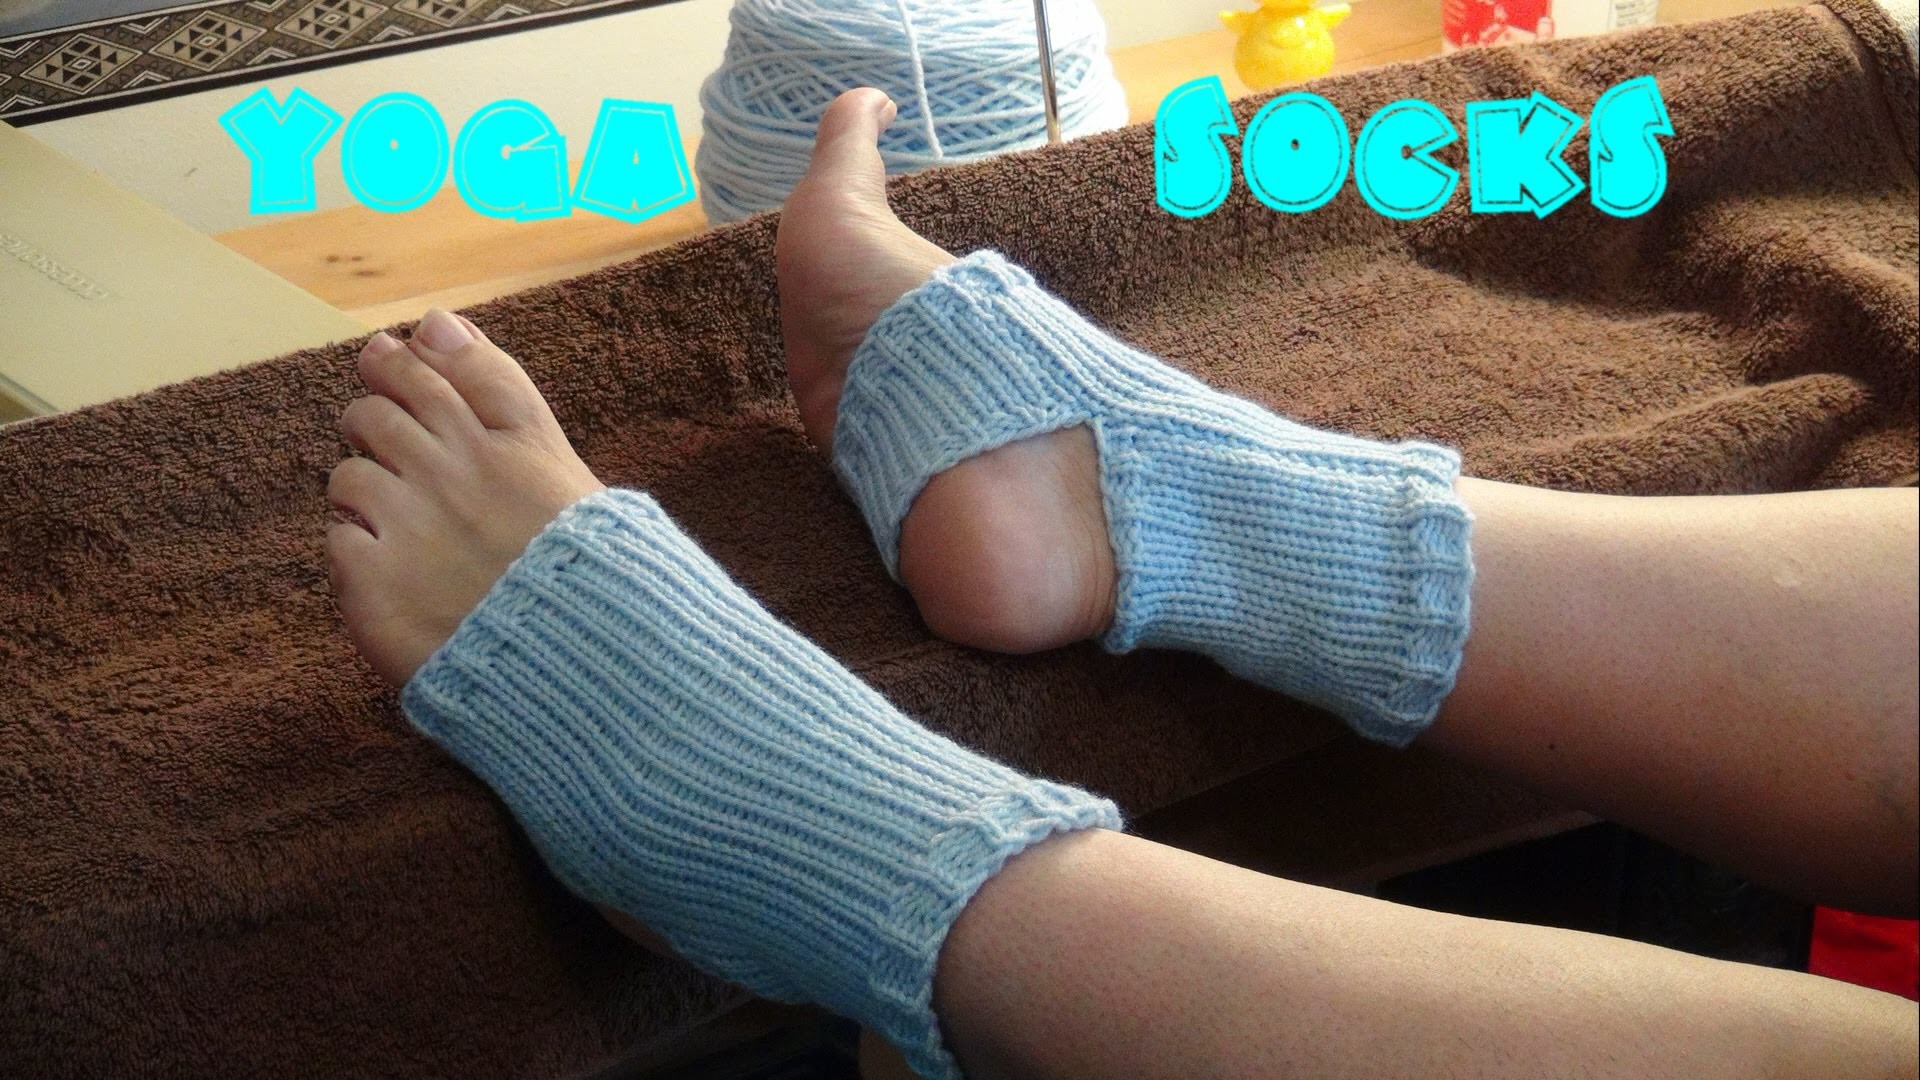 Yoga or Boot Socks